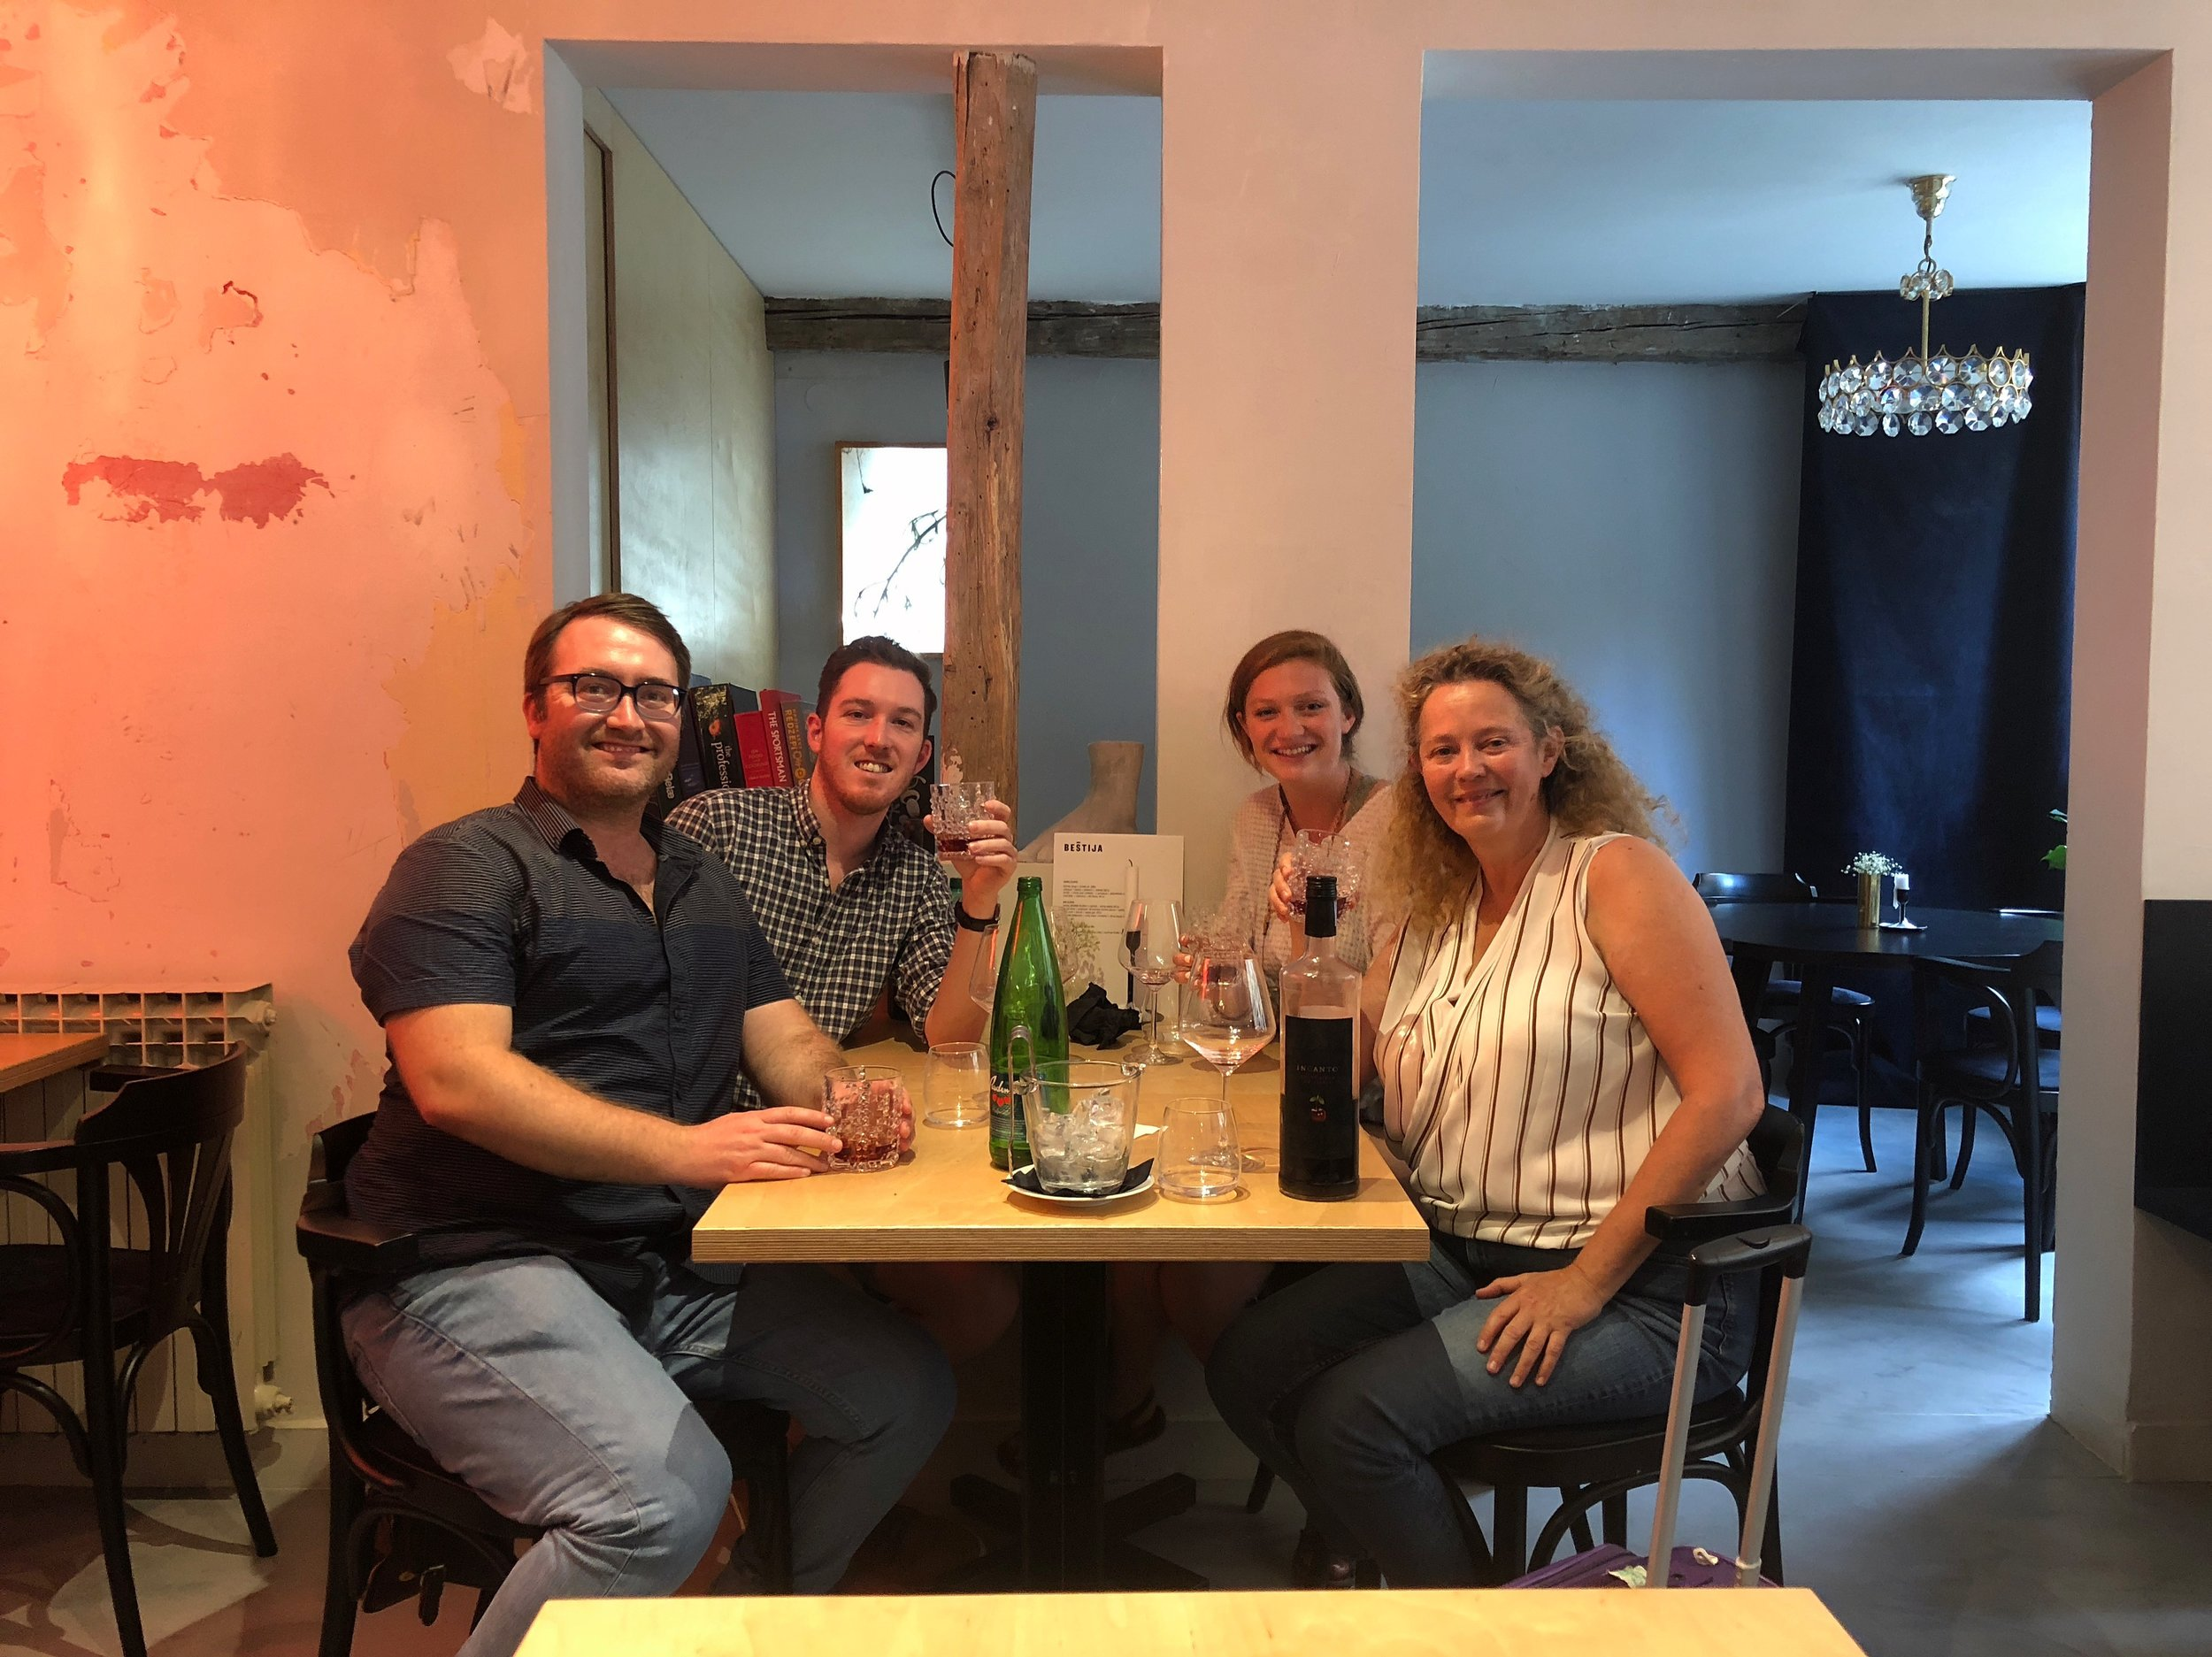 Dinner with friends at Beštija in Zagreb, one of our favorite new spots.